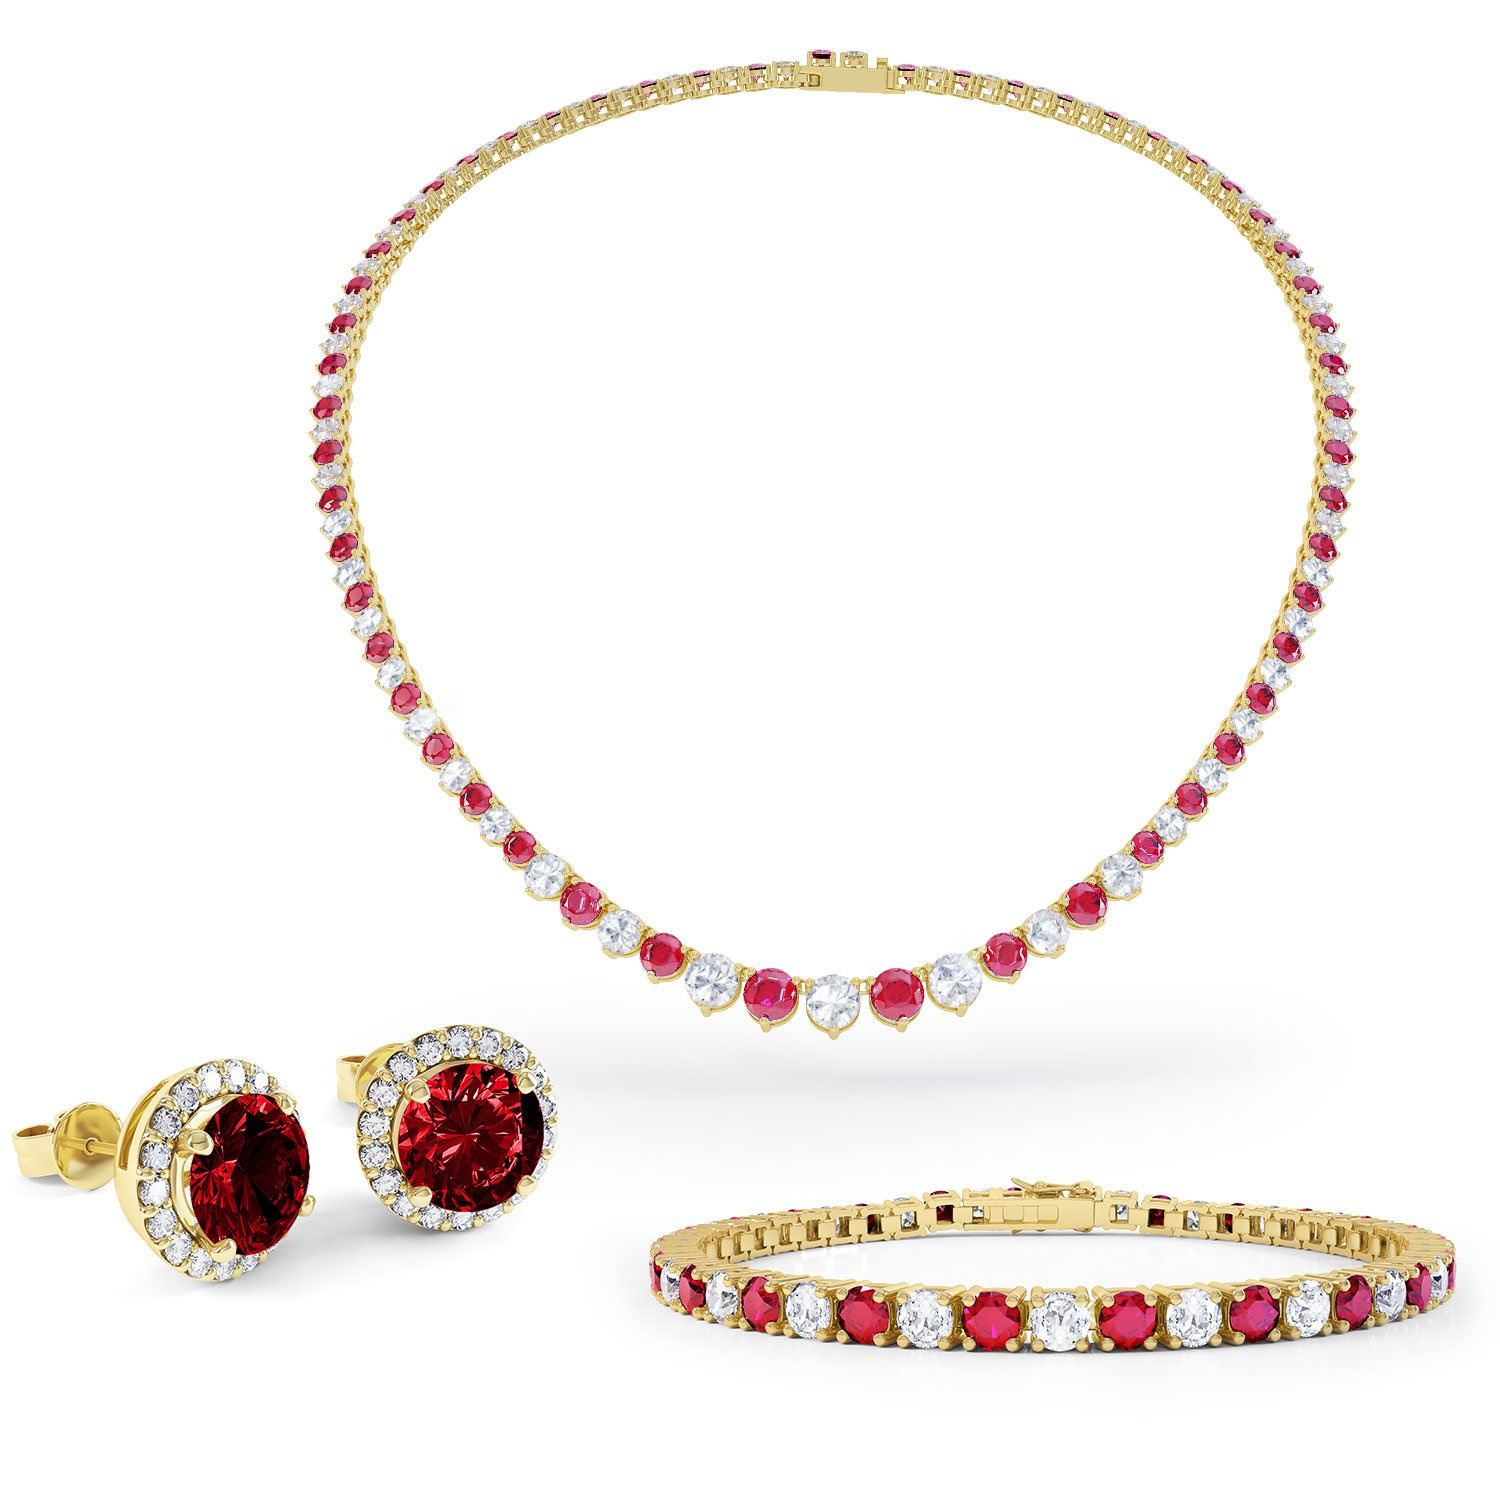 c6009c281df28 Eternity Ruby 18ct Gold Vermeil Jewelry Set with Necklace